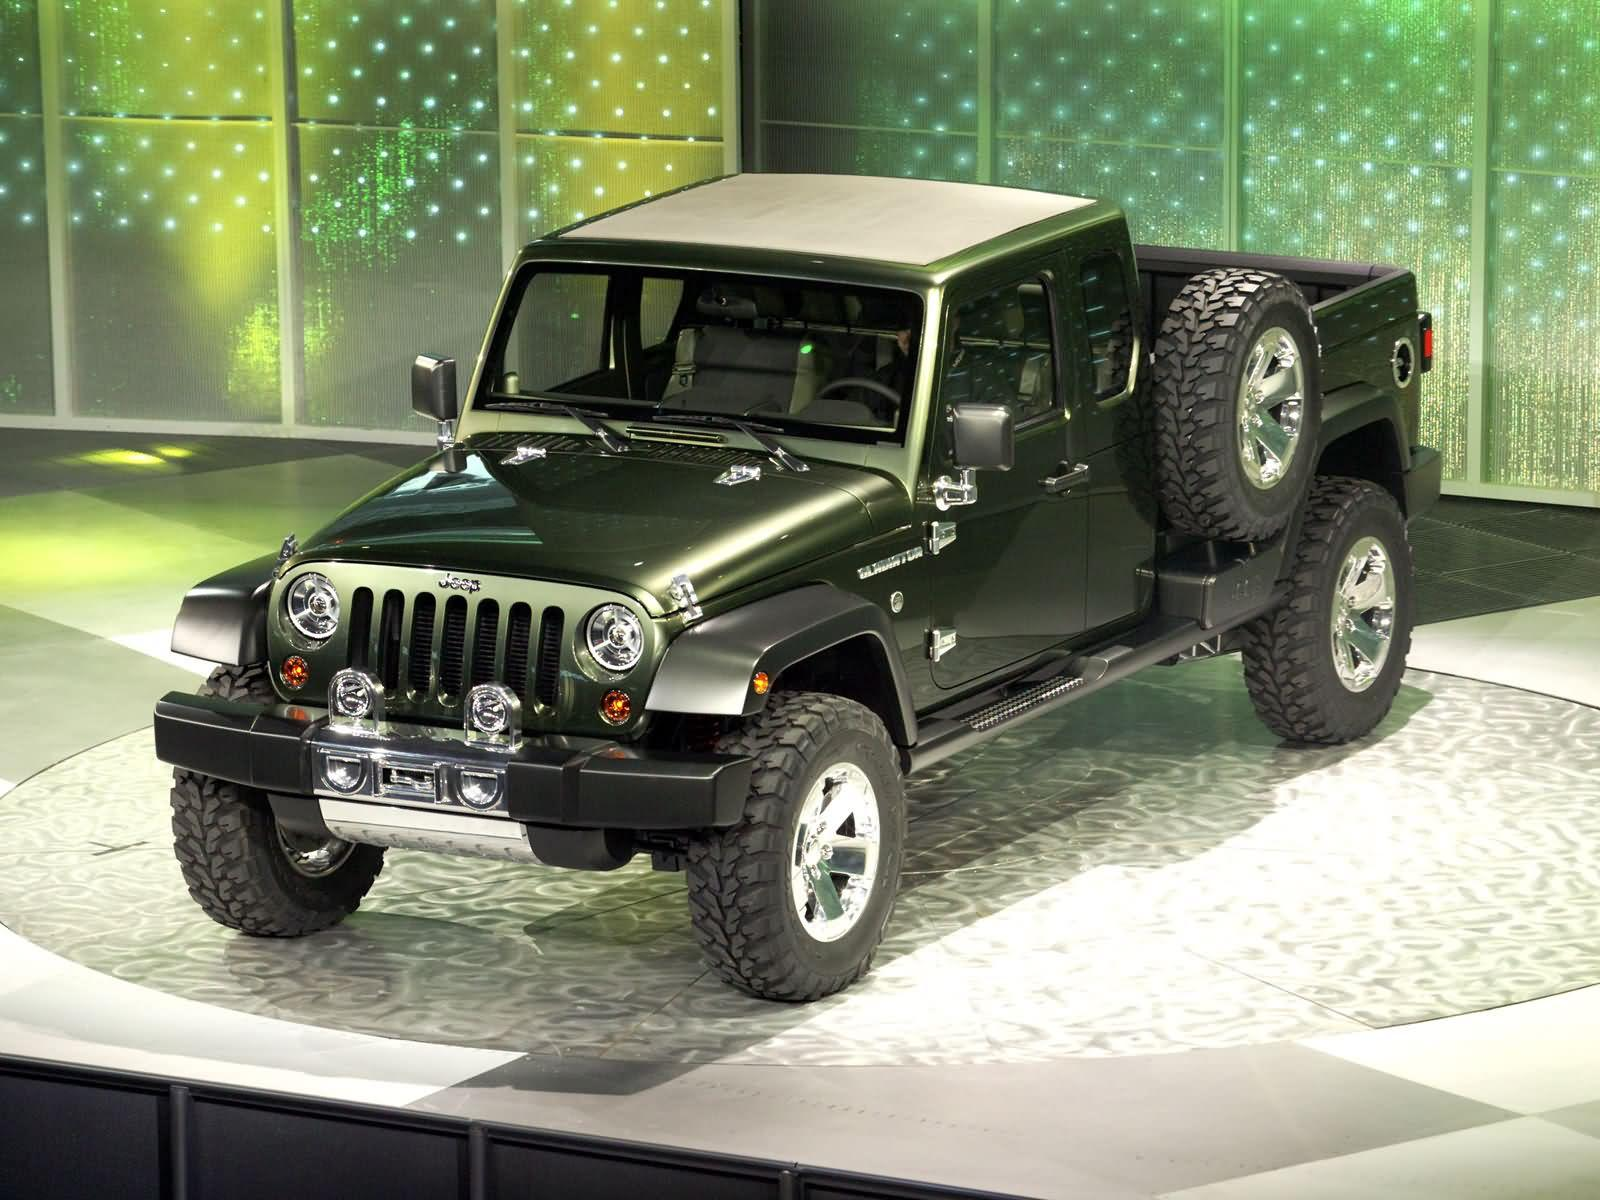 Jeep Gladiator picture #19777 | Jeep photo gallery | CarsBase.com